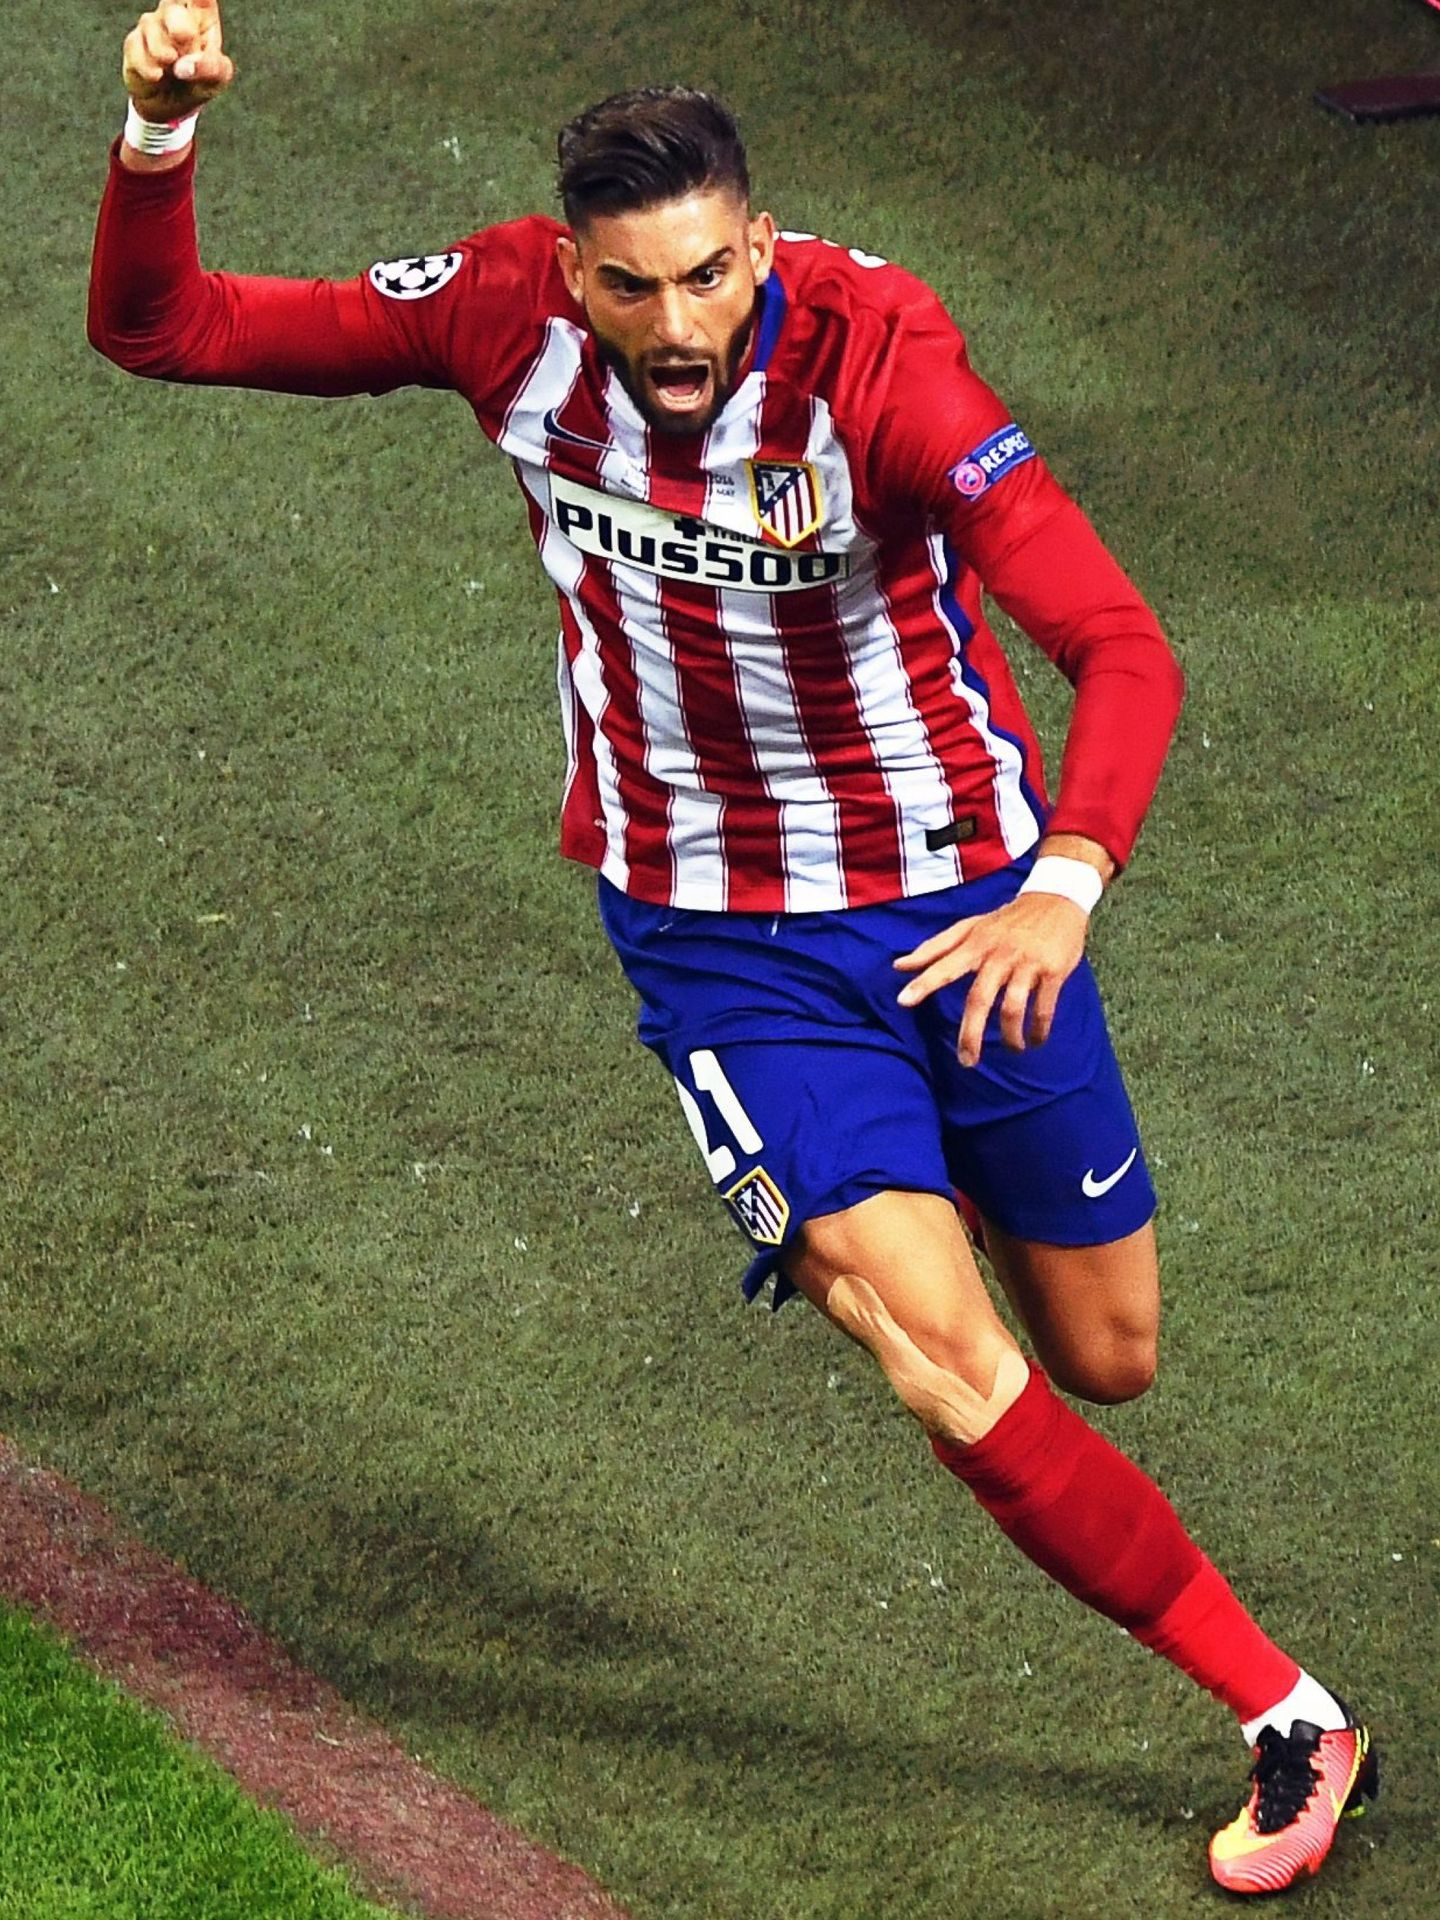 . Milan (Italy), 28 05 2016.- Atletico Madrid's Yannick Carrasco celebrates after scoring the 1-1 equalizer during the UEFA Champions League final between Real Madrid and Atletico Madrid at the Giuseppe Meazza Stadium in Milan, Italy, 28 May 2016. (Liga de Campeones, Italia) EFE EPA CHRISTIAN BRUNA